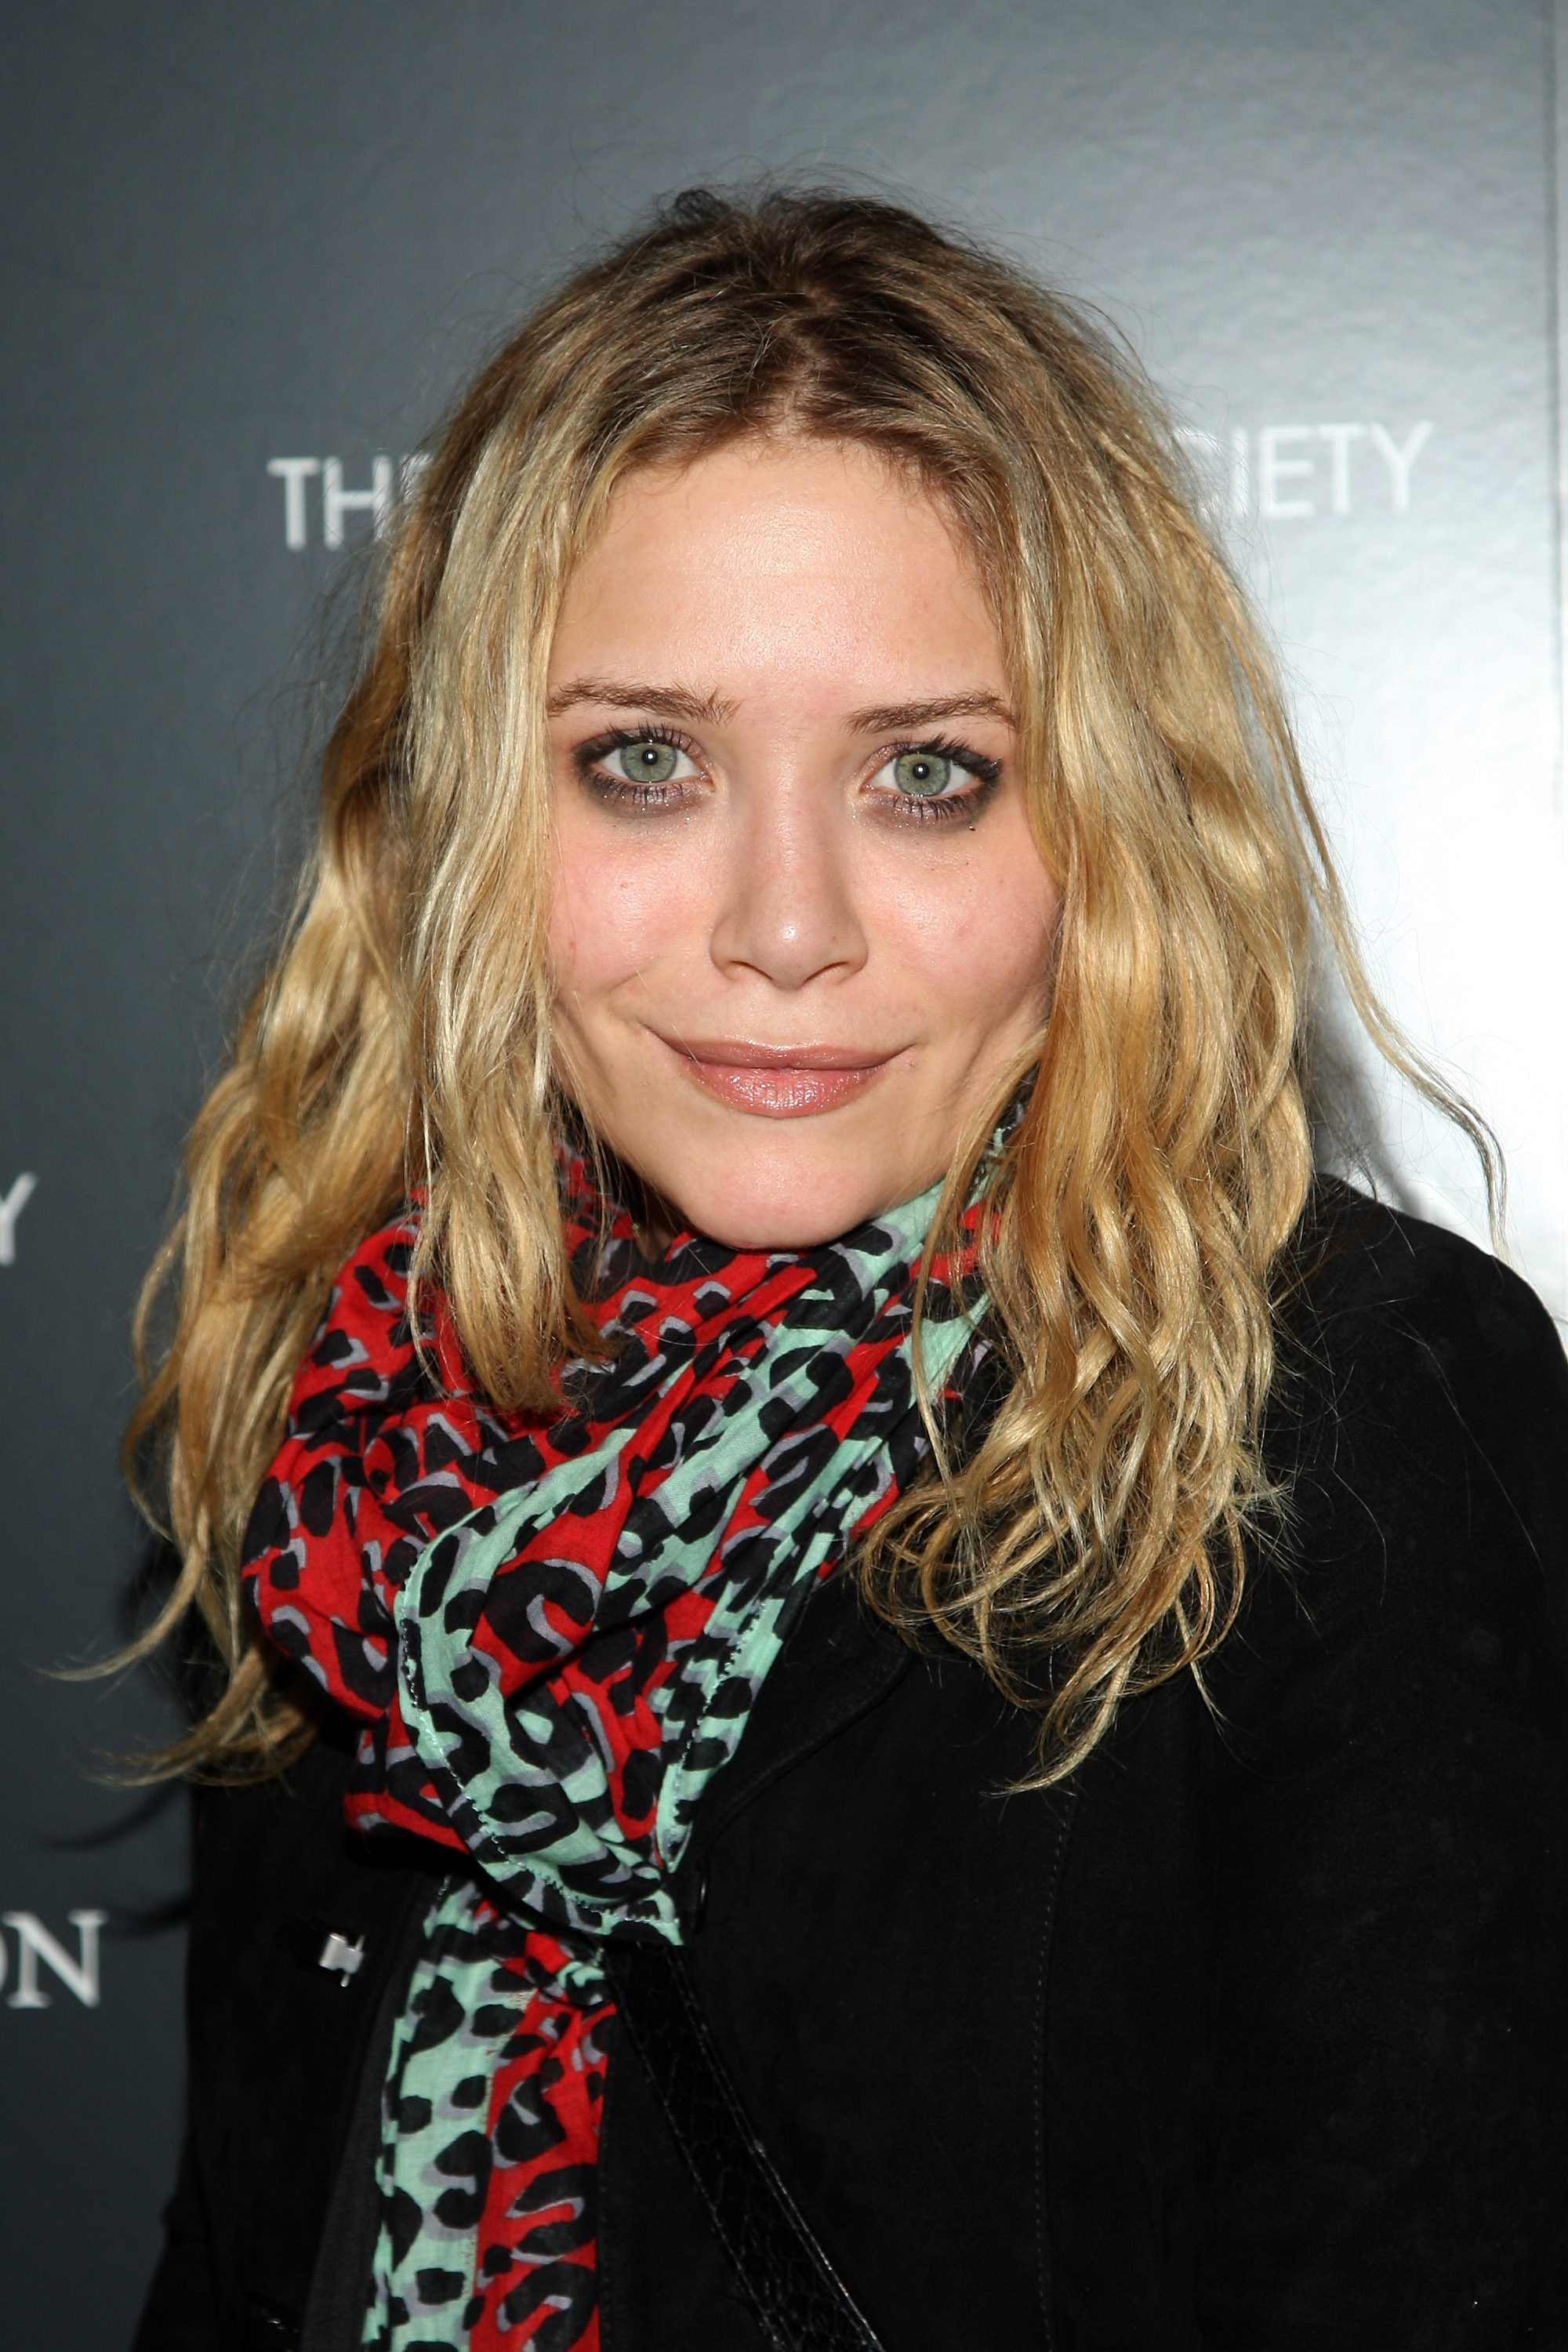 59282_Mary-Kate_Olsen_2008-12-11_-__Screening_of_The_Curious_Case_of_Benjamin_Button_122_1024lo.jpg